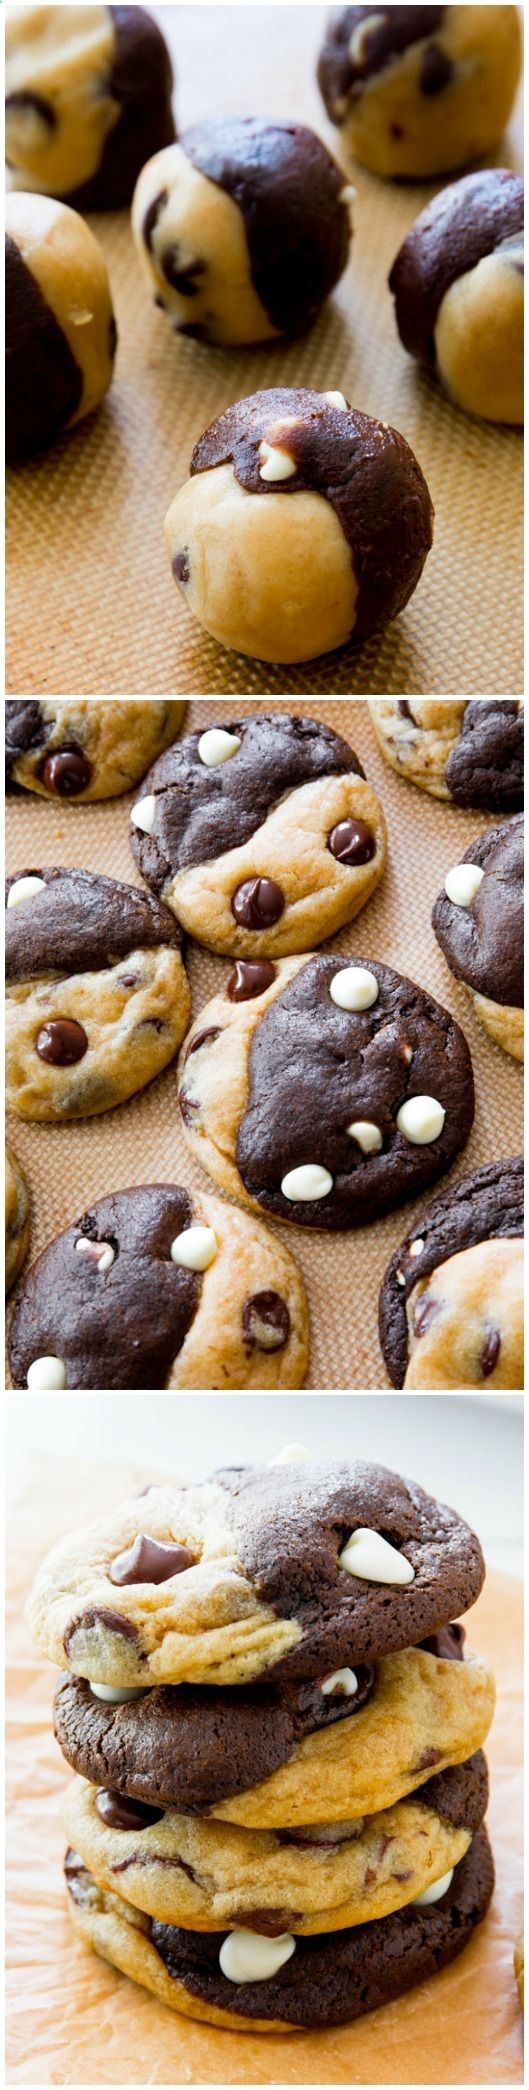 Soft-baked and completely irresistible chocolate chip cookies swirled with chocolate white chocolate cookies!